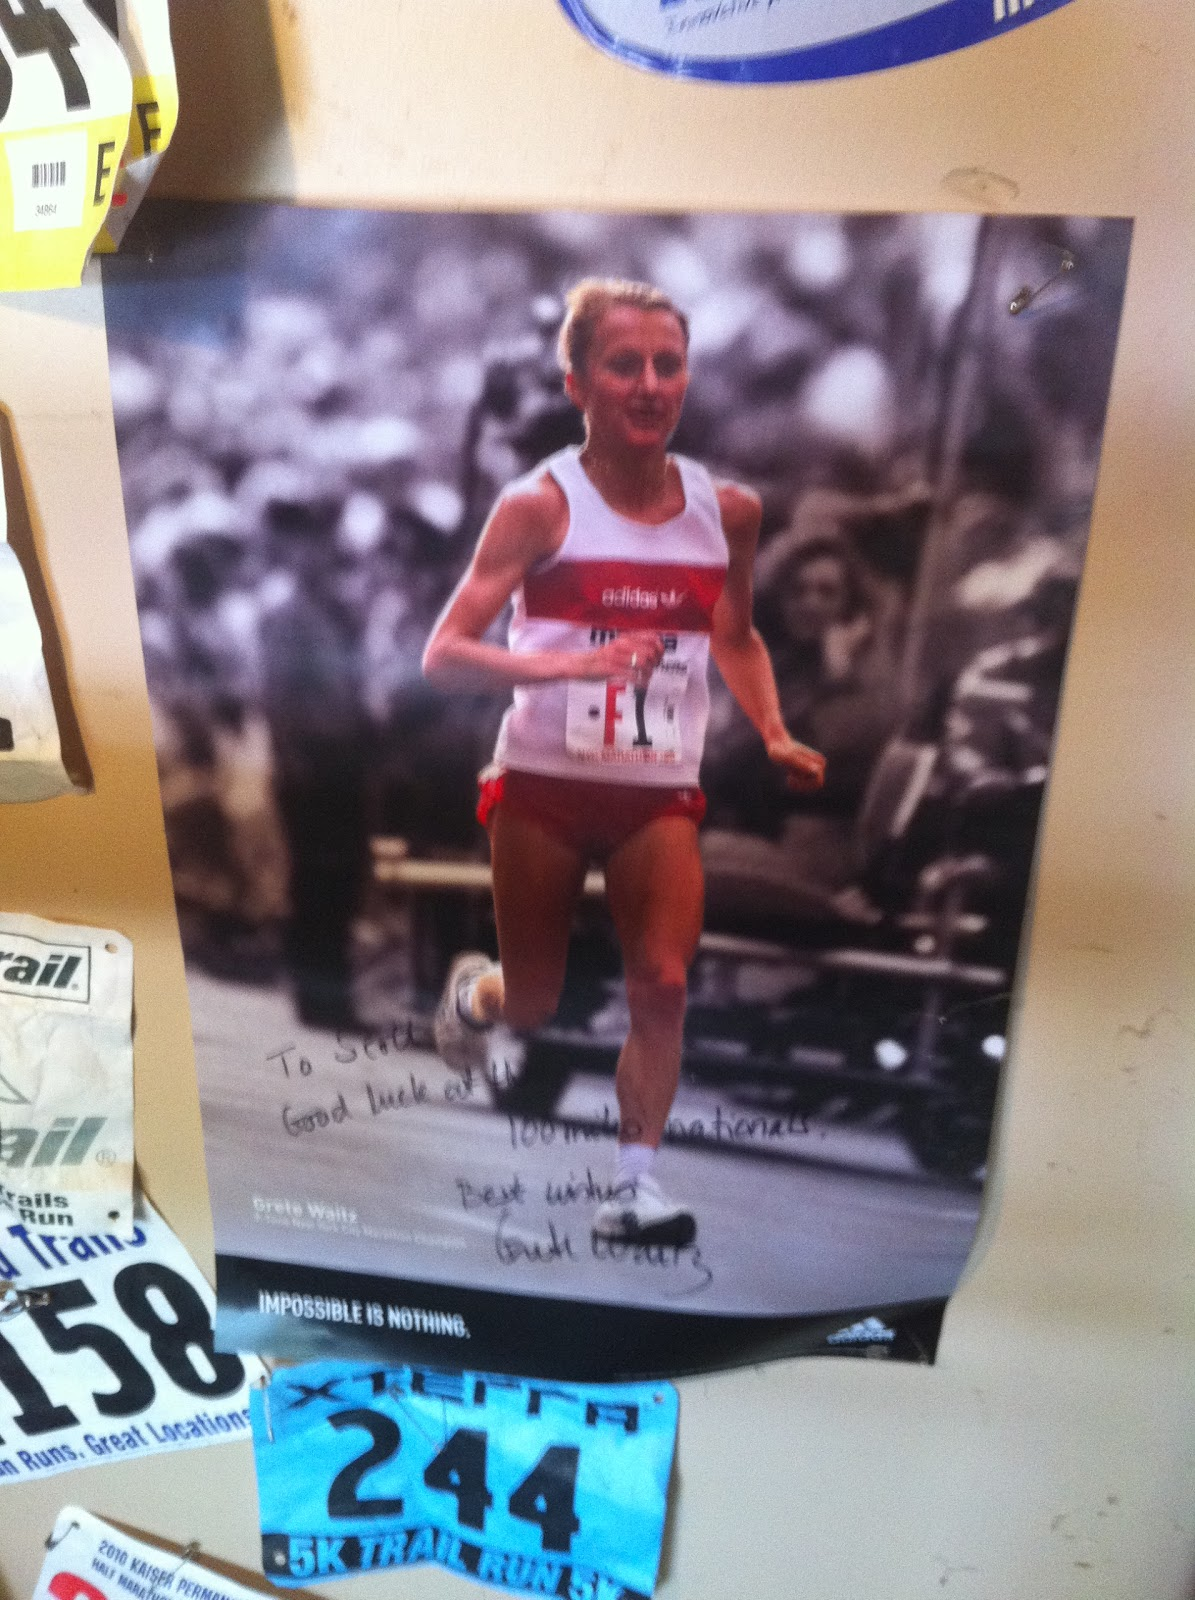 Forum on this topic: Julie Graham, grete-waitz-marathon-running/